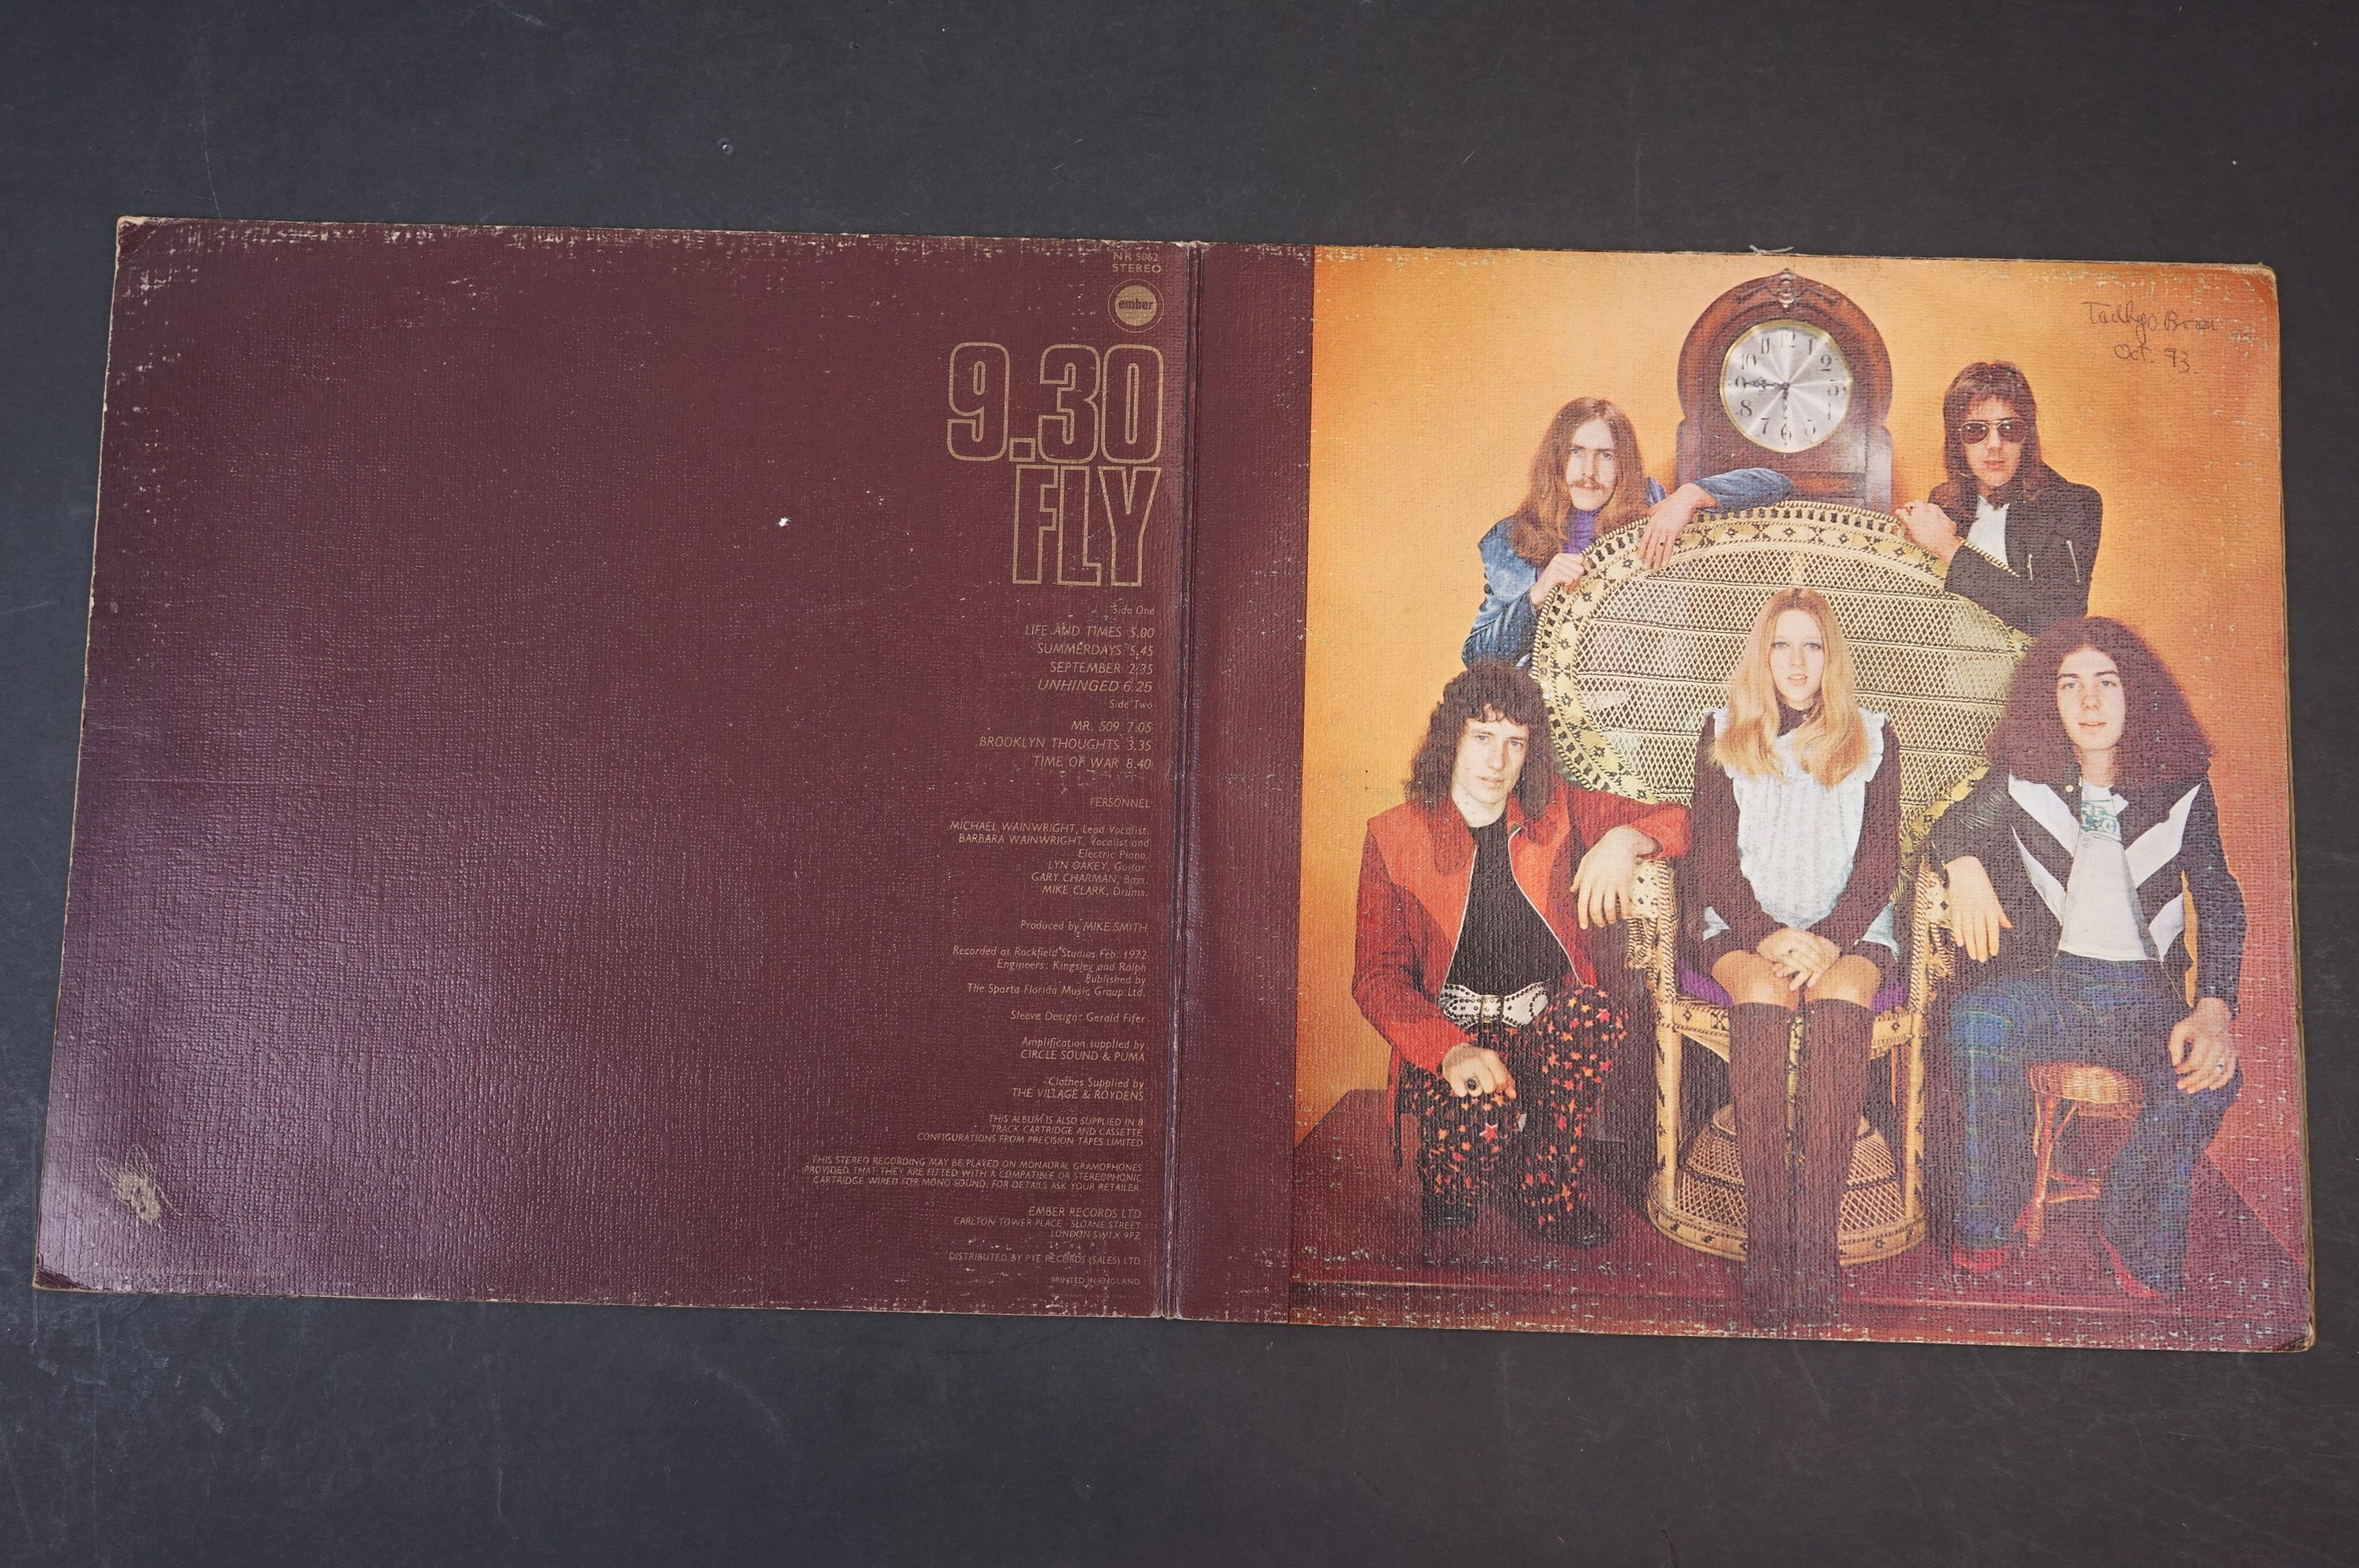 Vinyl - 9.30 Fly self titled LP on Ember NR5062 stereo, textured gatefold sleeve, writing to - Image 2 of 7